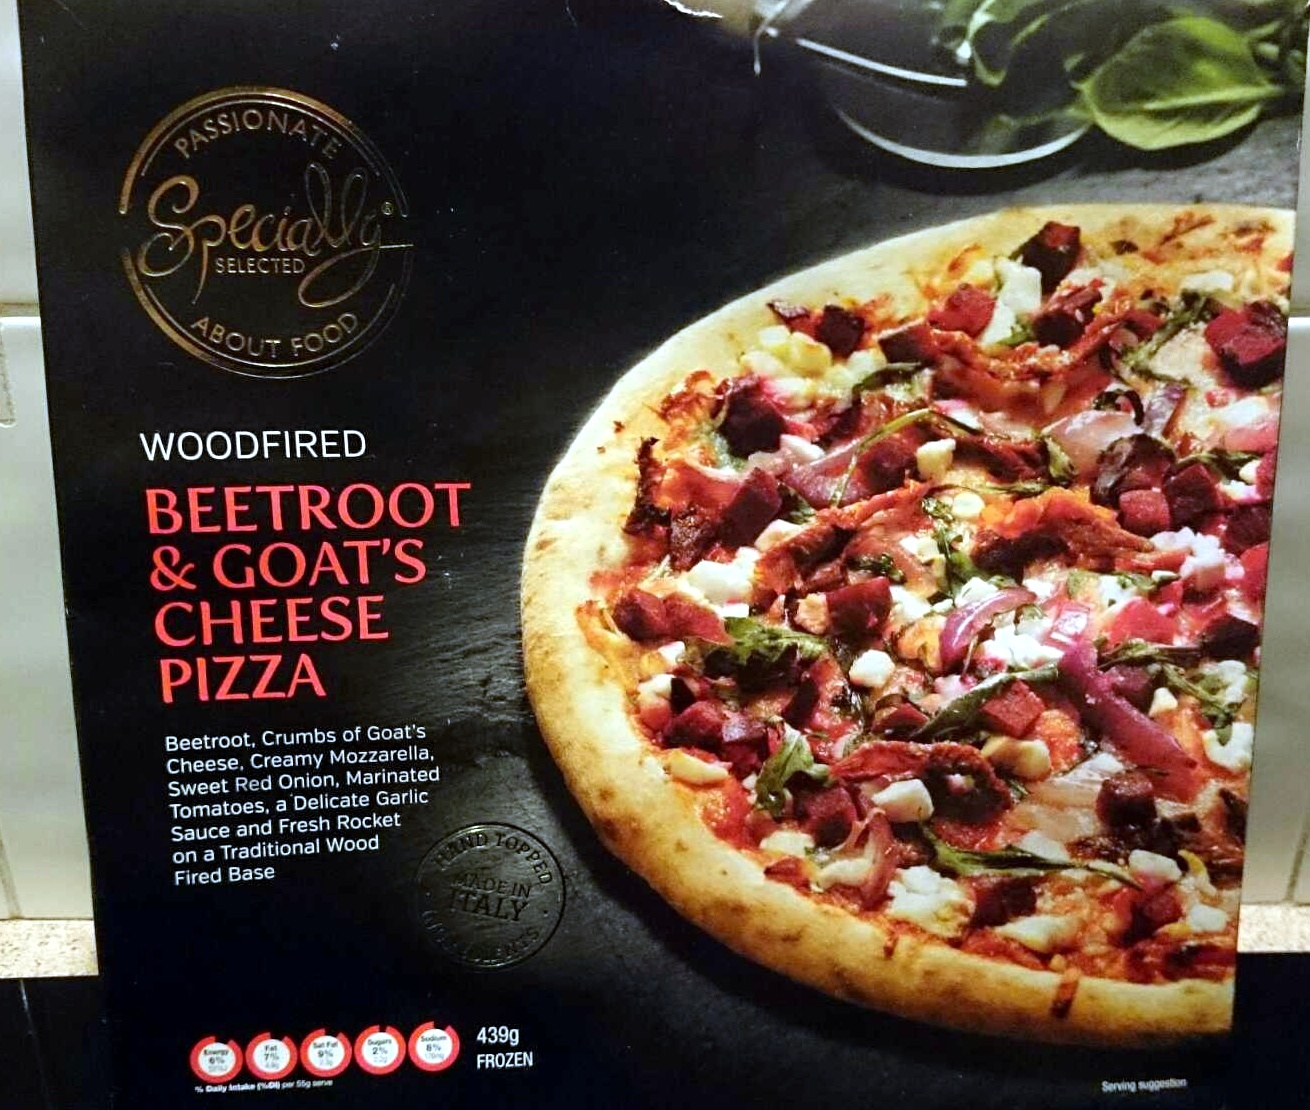 Woodfired Beetroot & Goats Cheese Pizza - Product - en